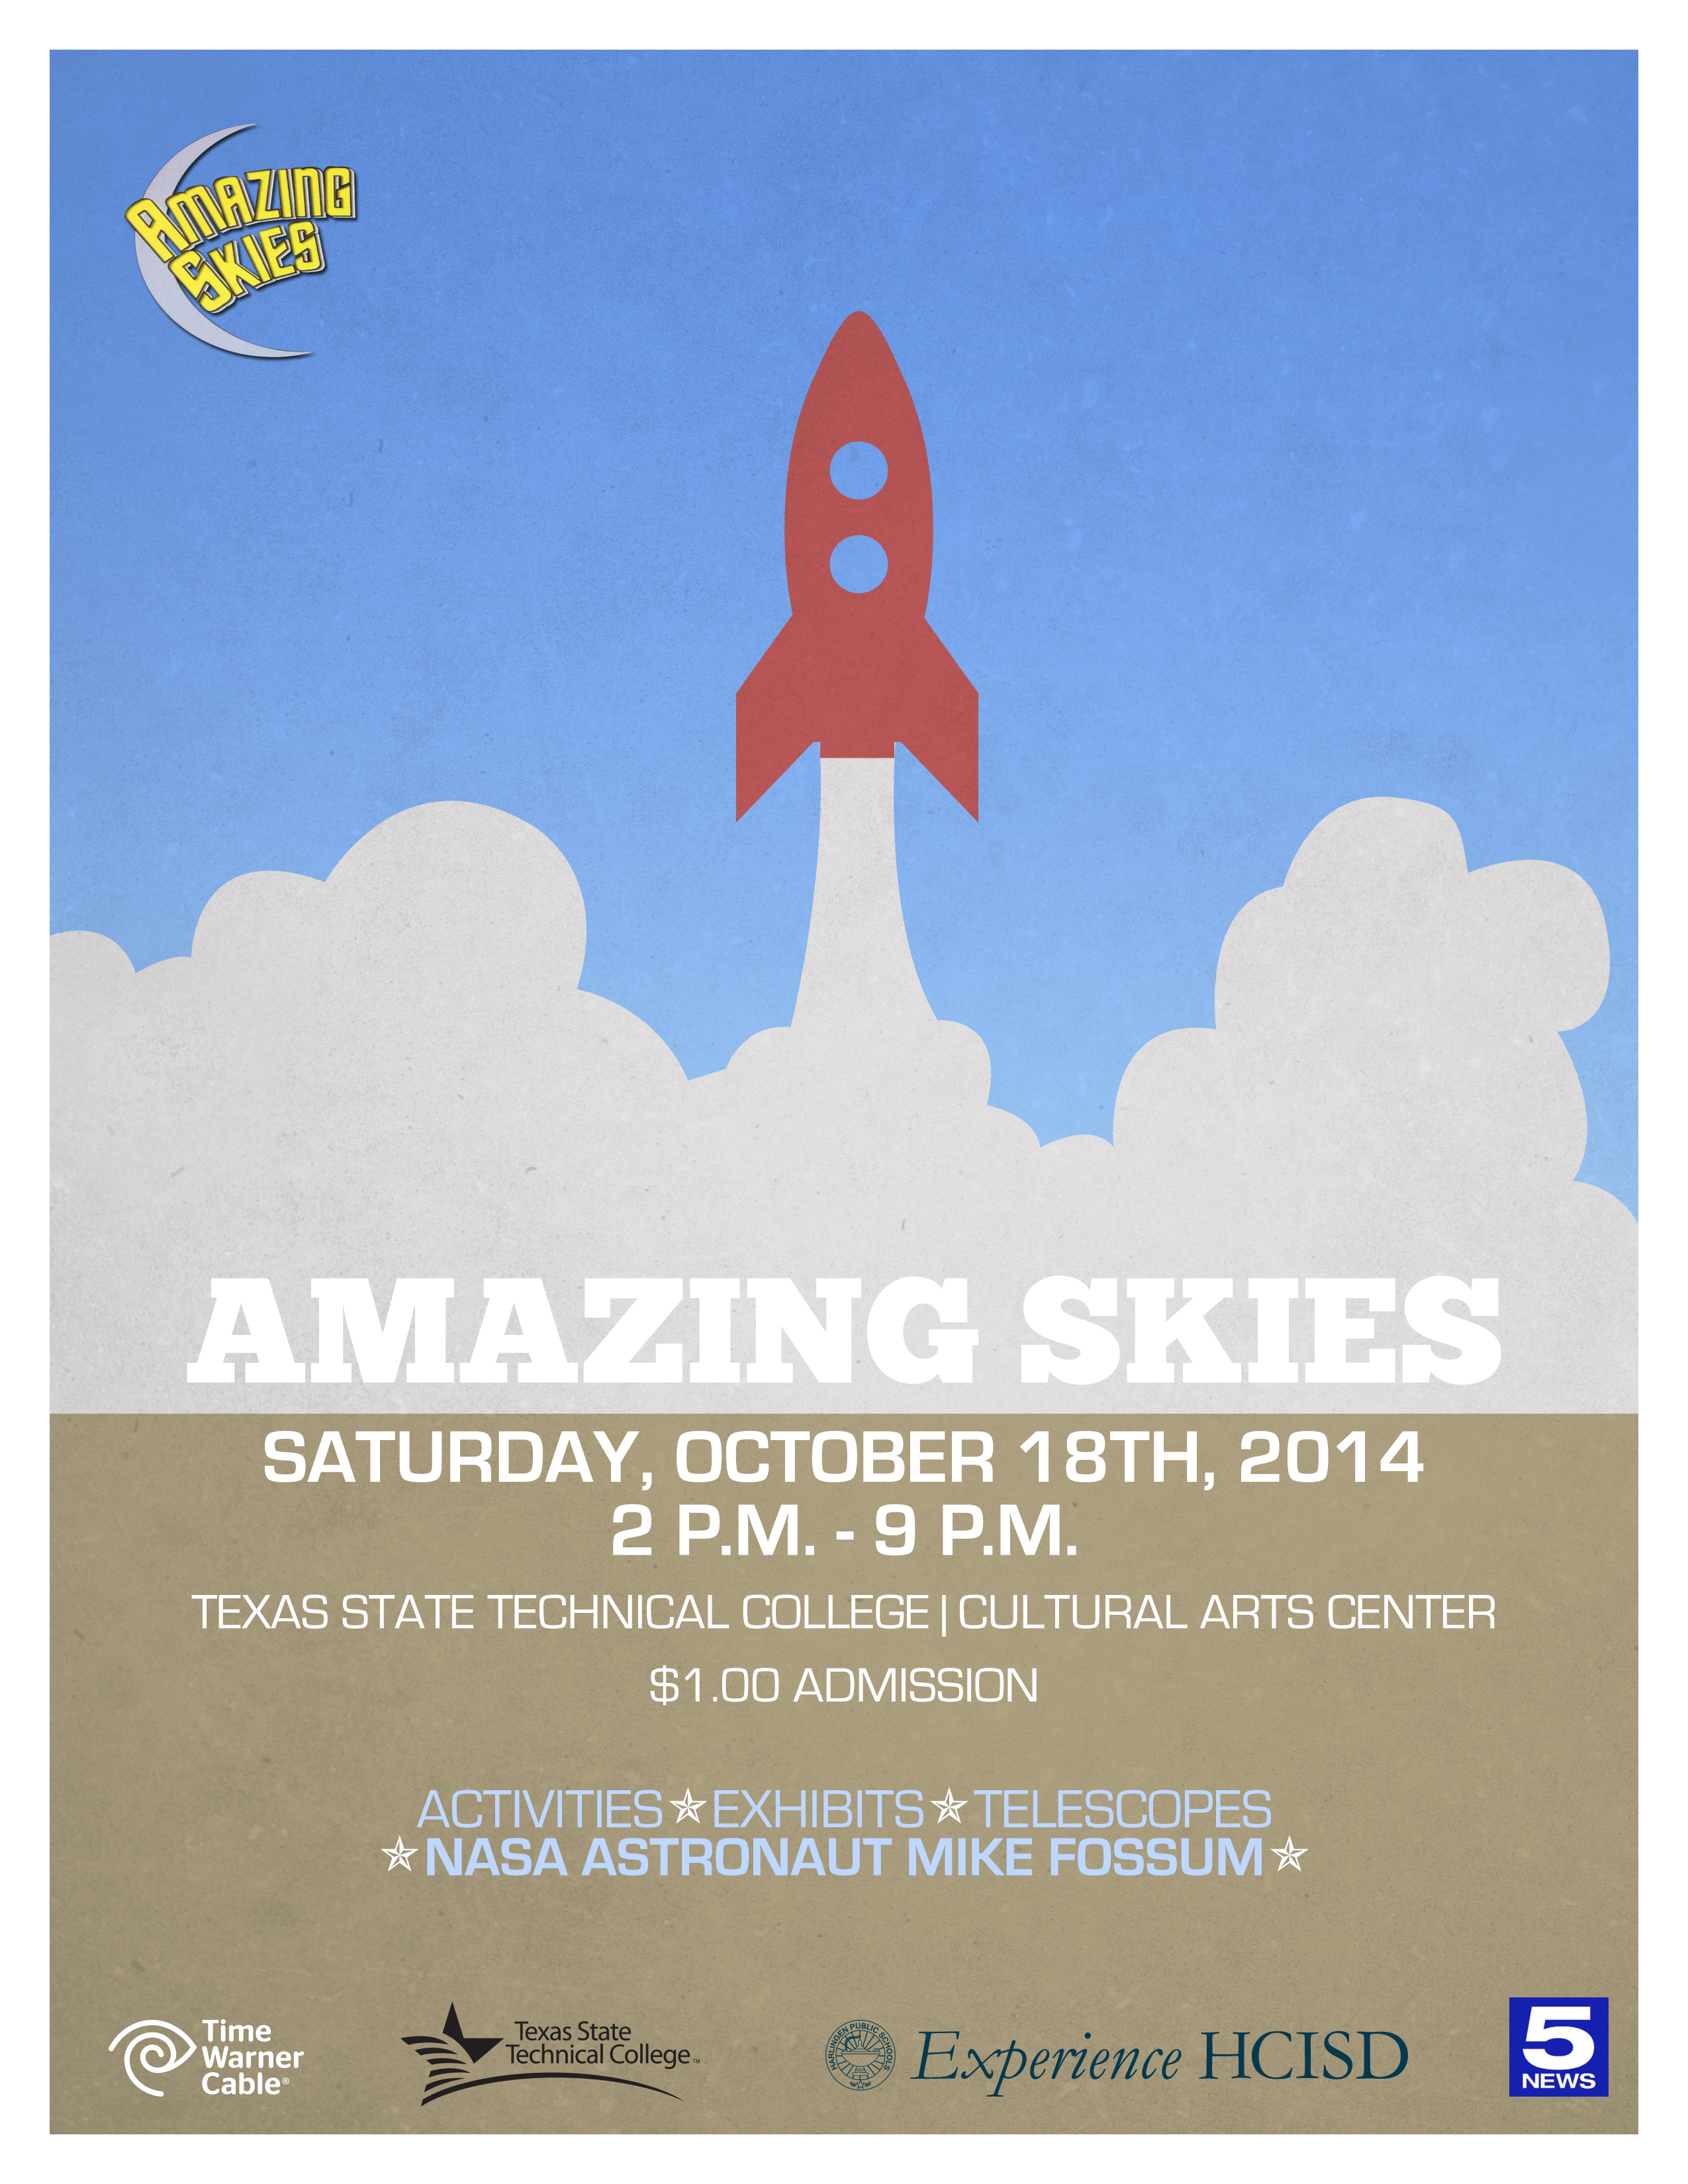 Community invited to attend Amazing Skies